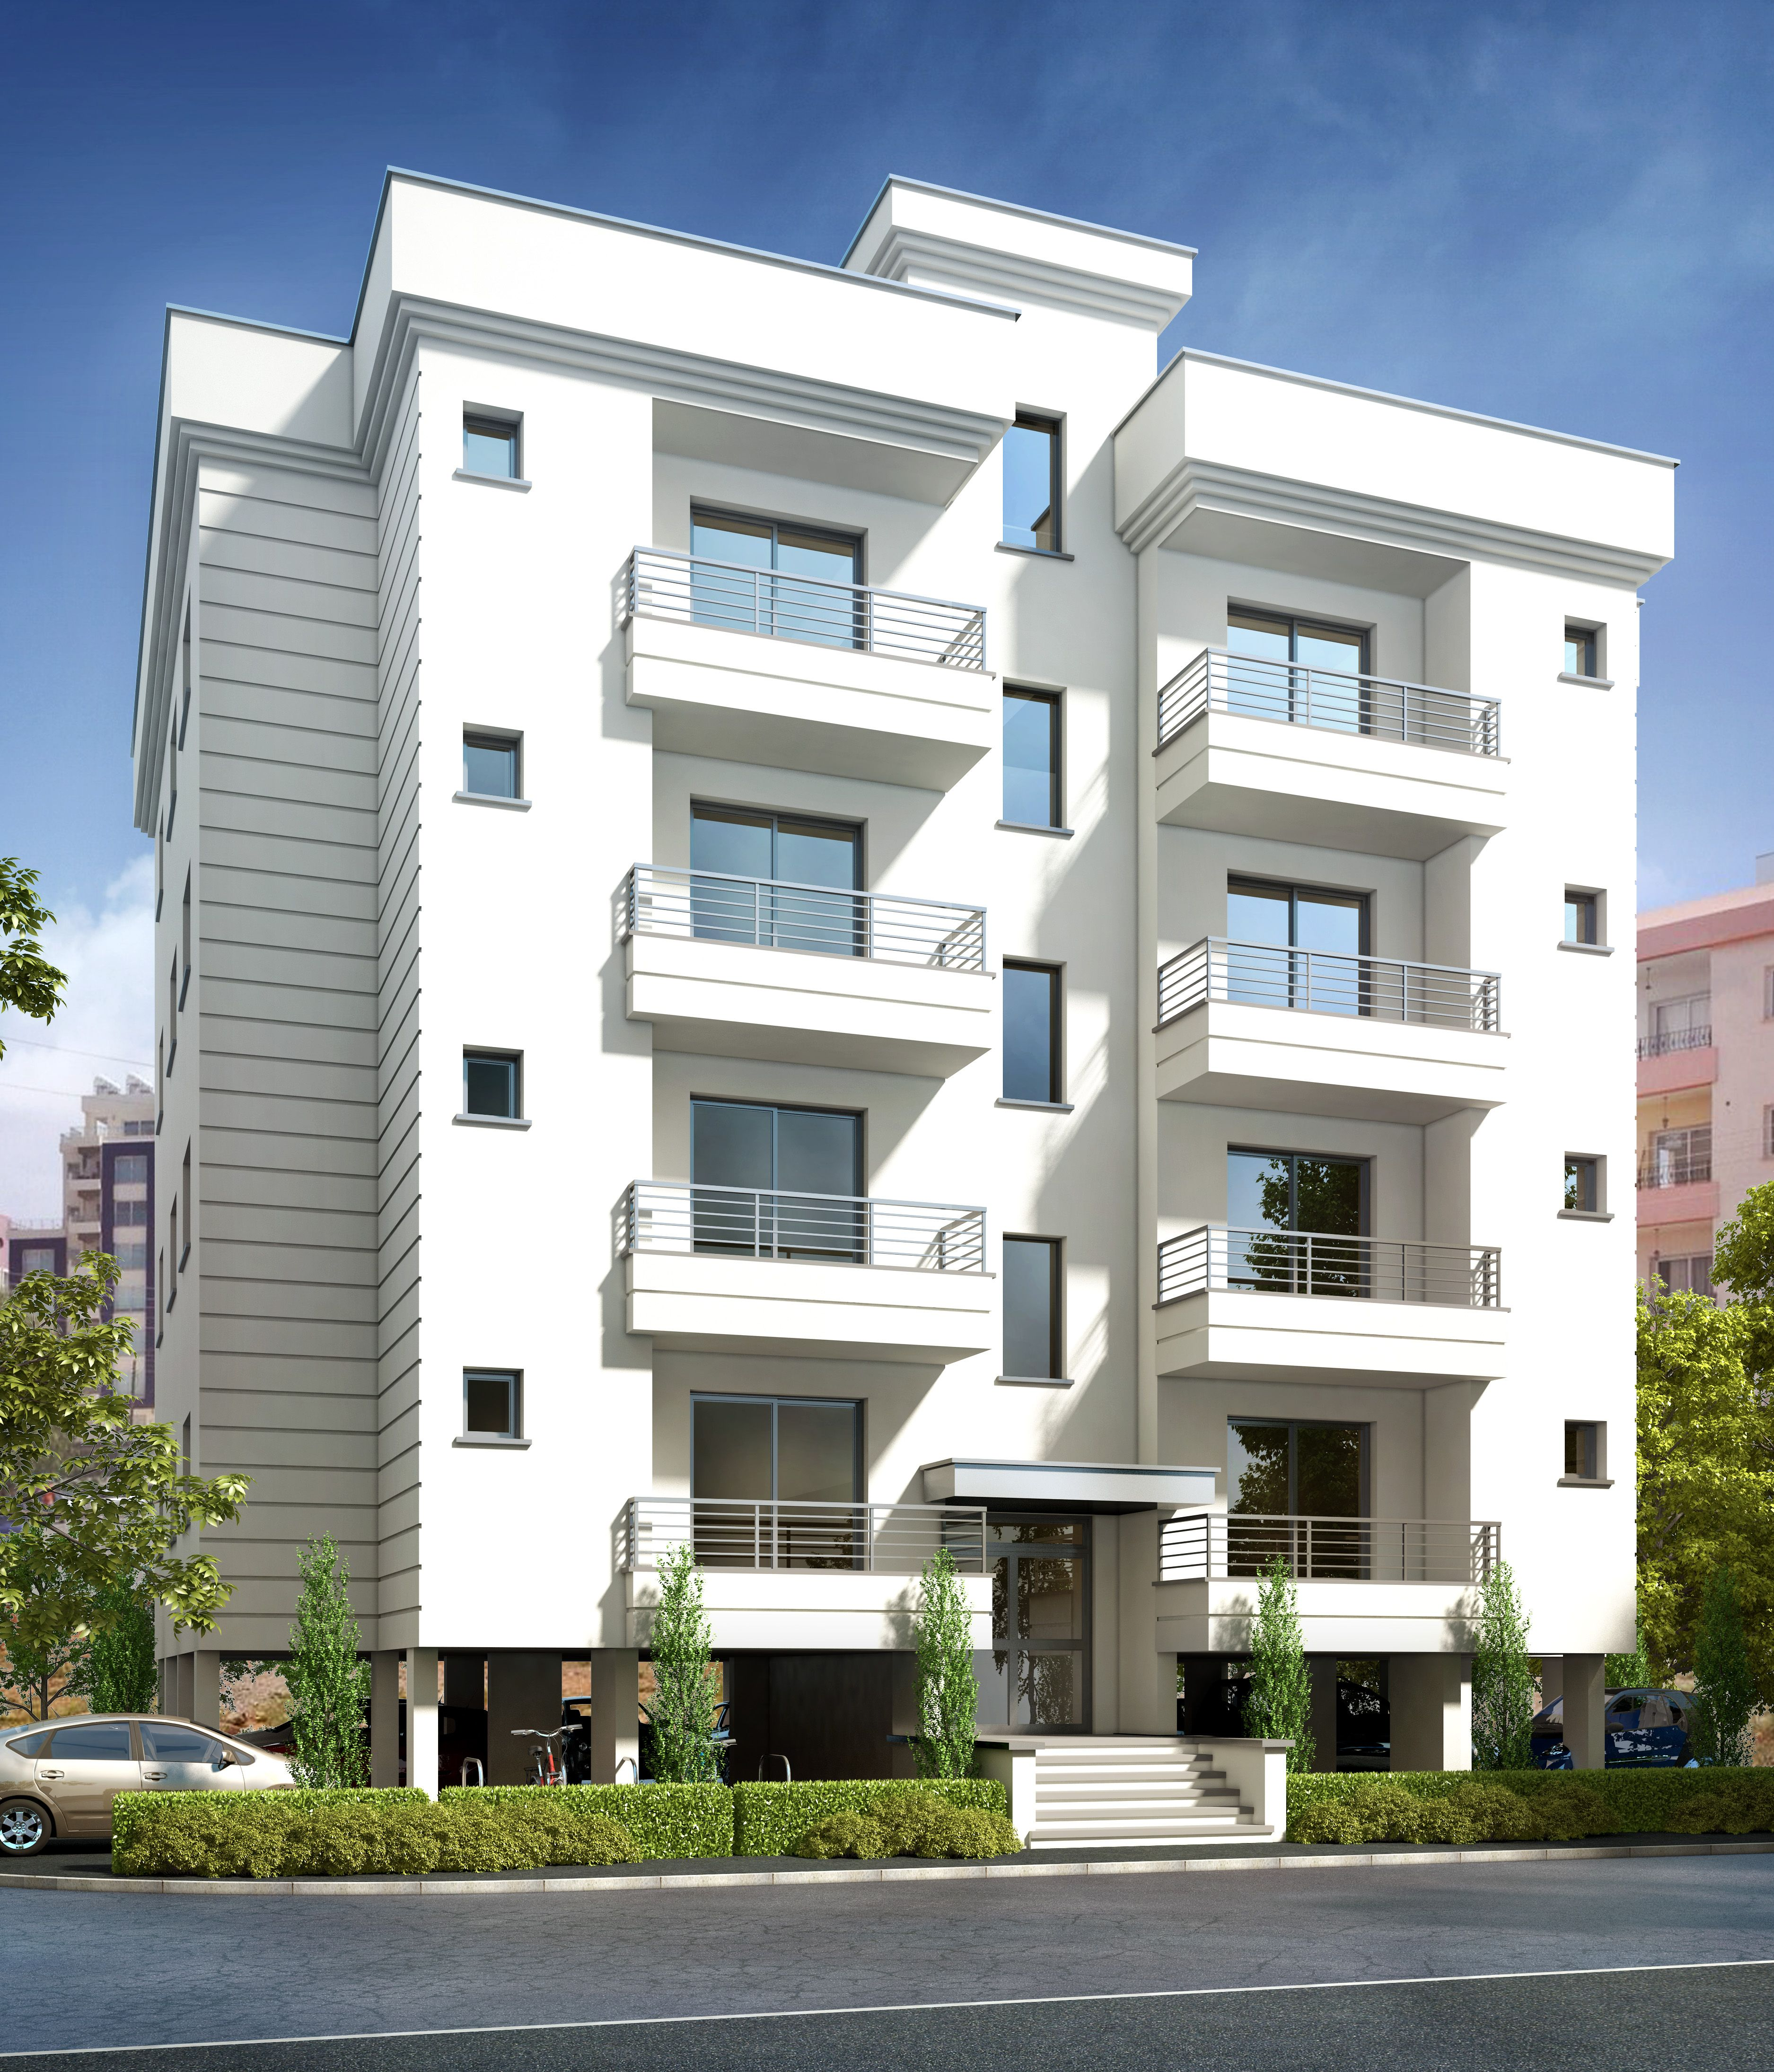 Apartment Facade: Luxurious Apartments For Sale In Bogaz, Northern Cyprus